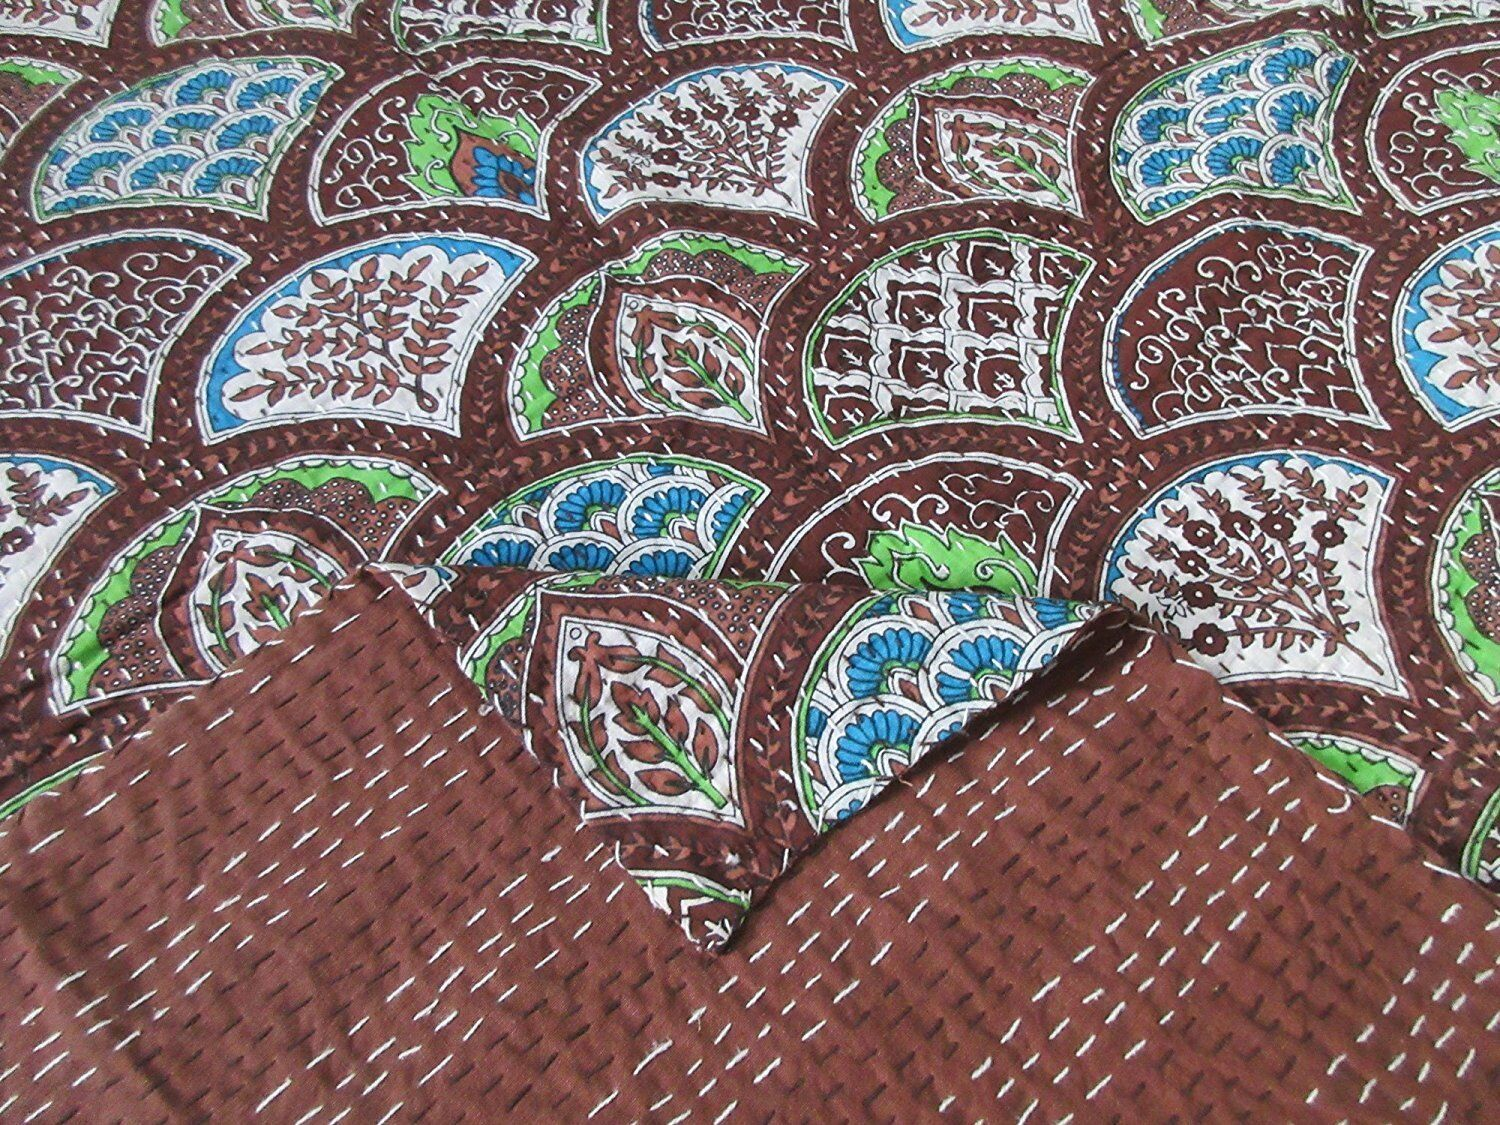 Vintage Ralli Kantha Quilt Bedspread Indian Handmade Cotton Blanket Queen